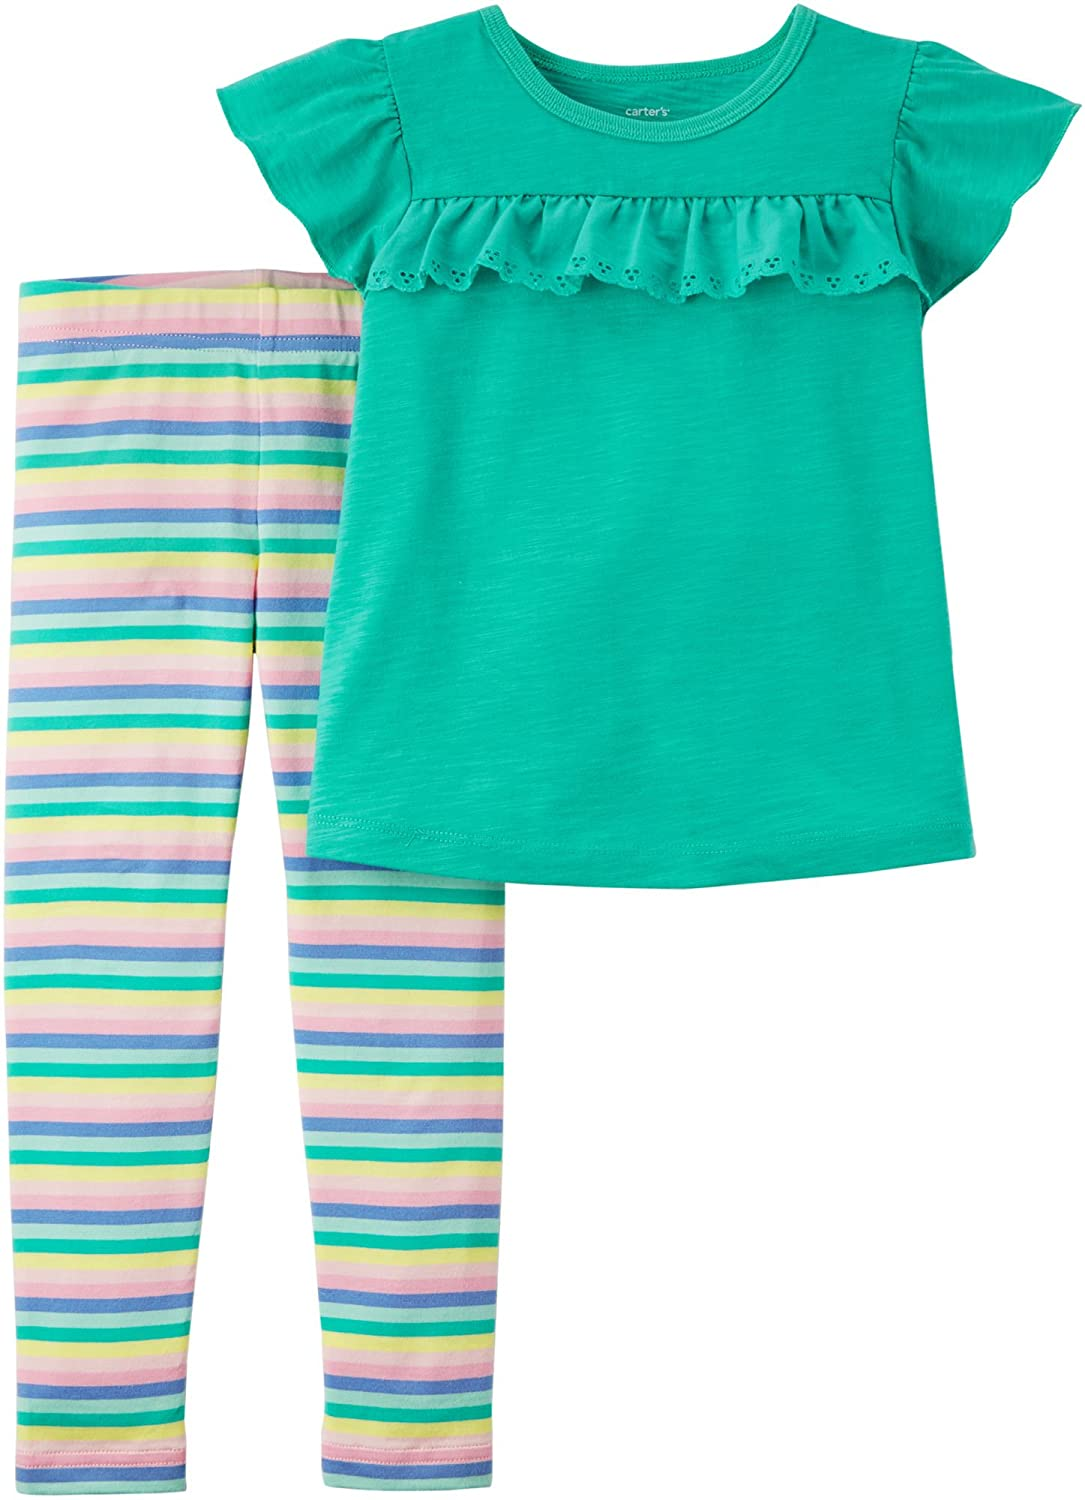 Carter's Girls' 2 Pc Playwear Sets 259g335 Carters